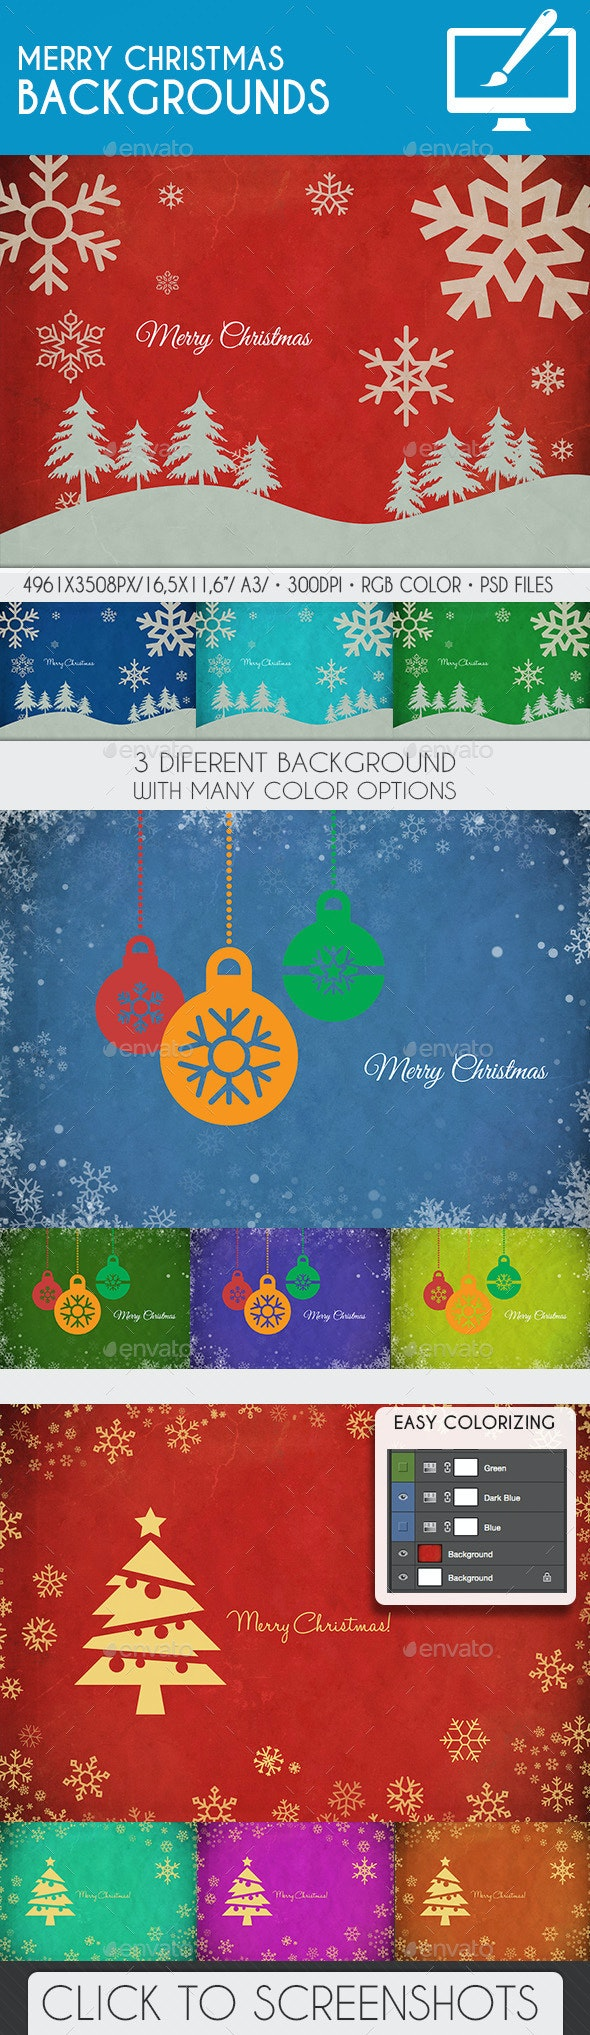 Vintage Merry Christmas Background PSD - Backgrounds Graphics